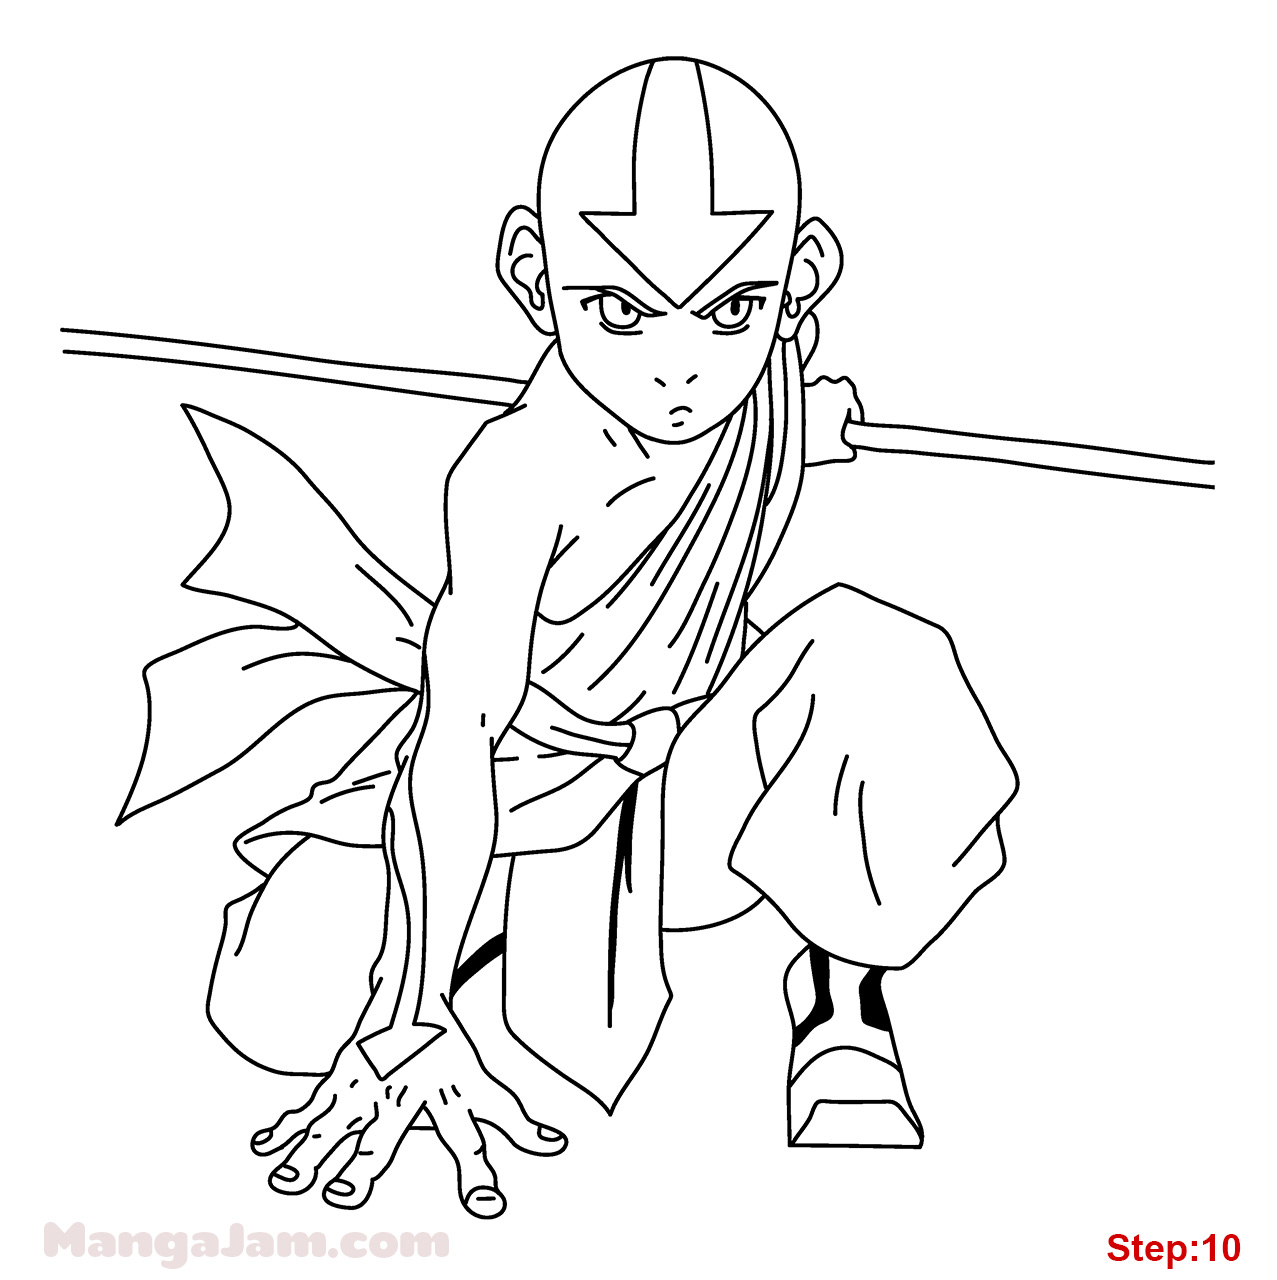 how to draw aang how to draw avatar aang drawingforallnet how to aang draw